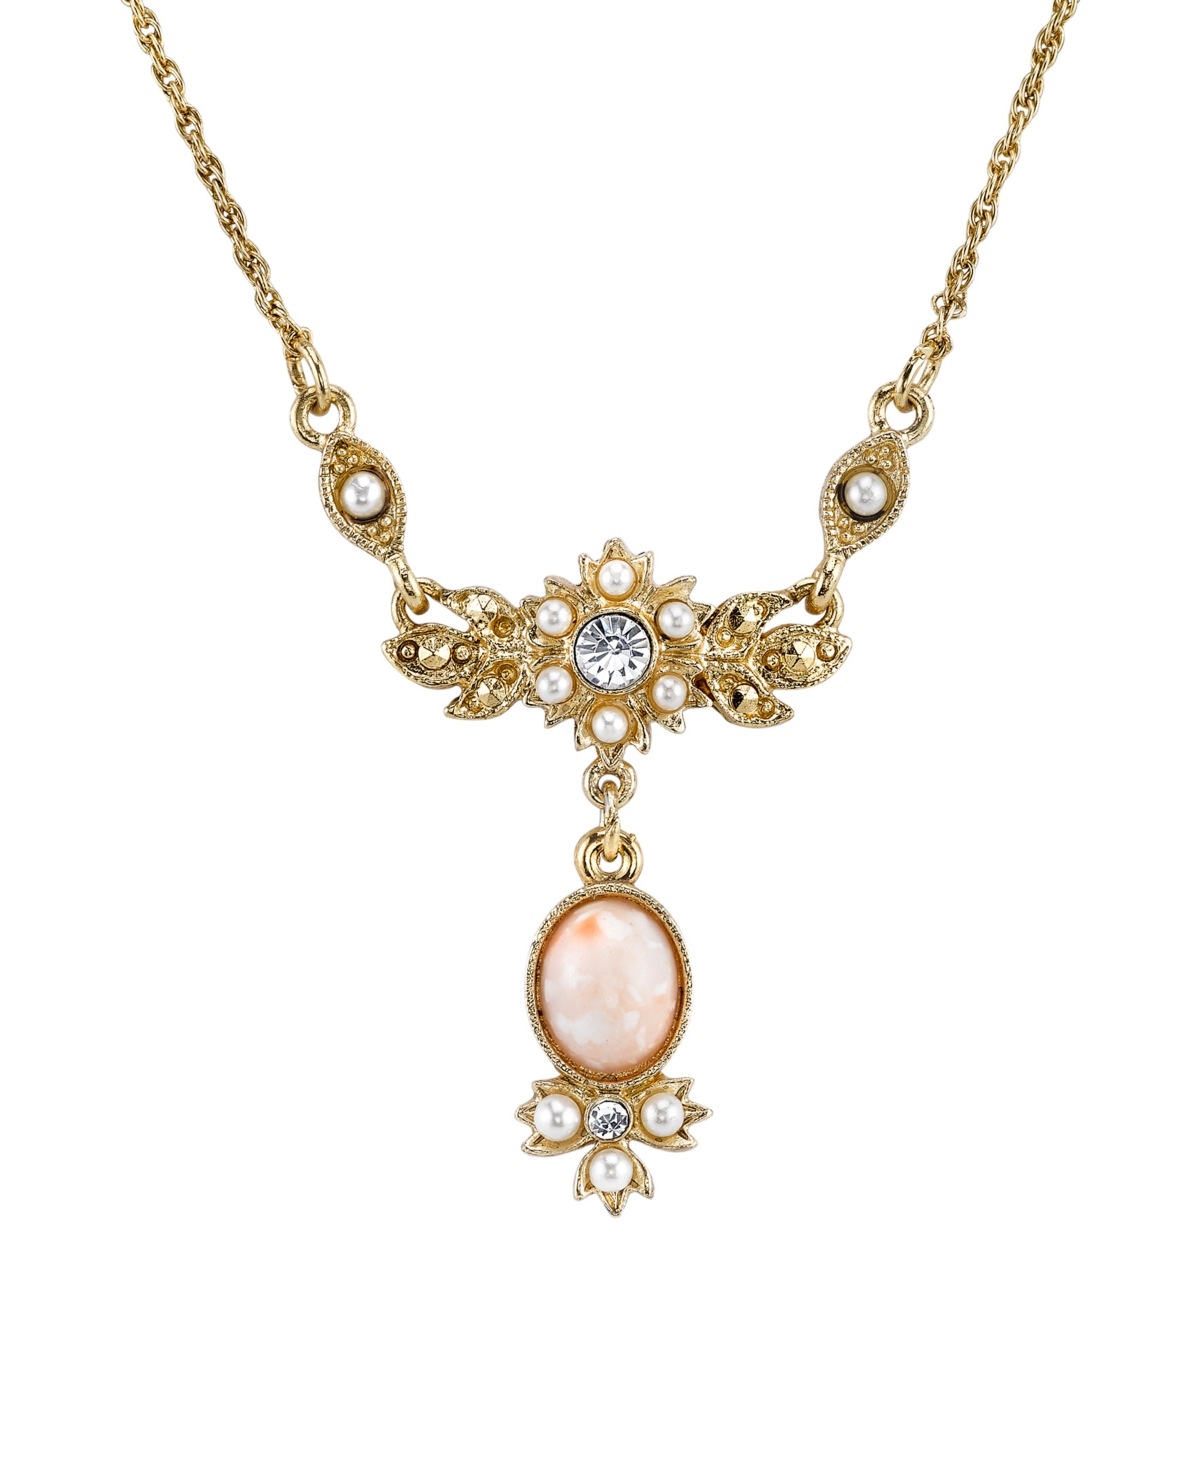 Downton Abbey Gold-Tone Peach Color Simulated Pearl and Crystal Necklace 16